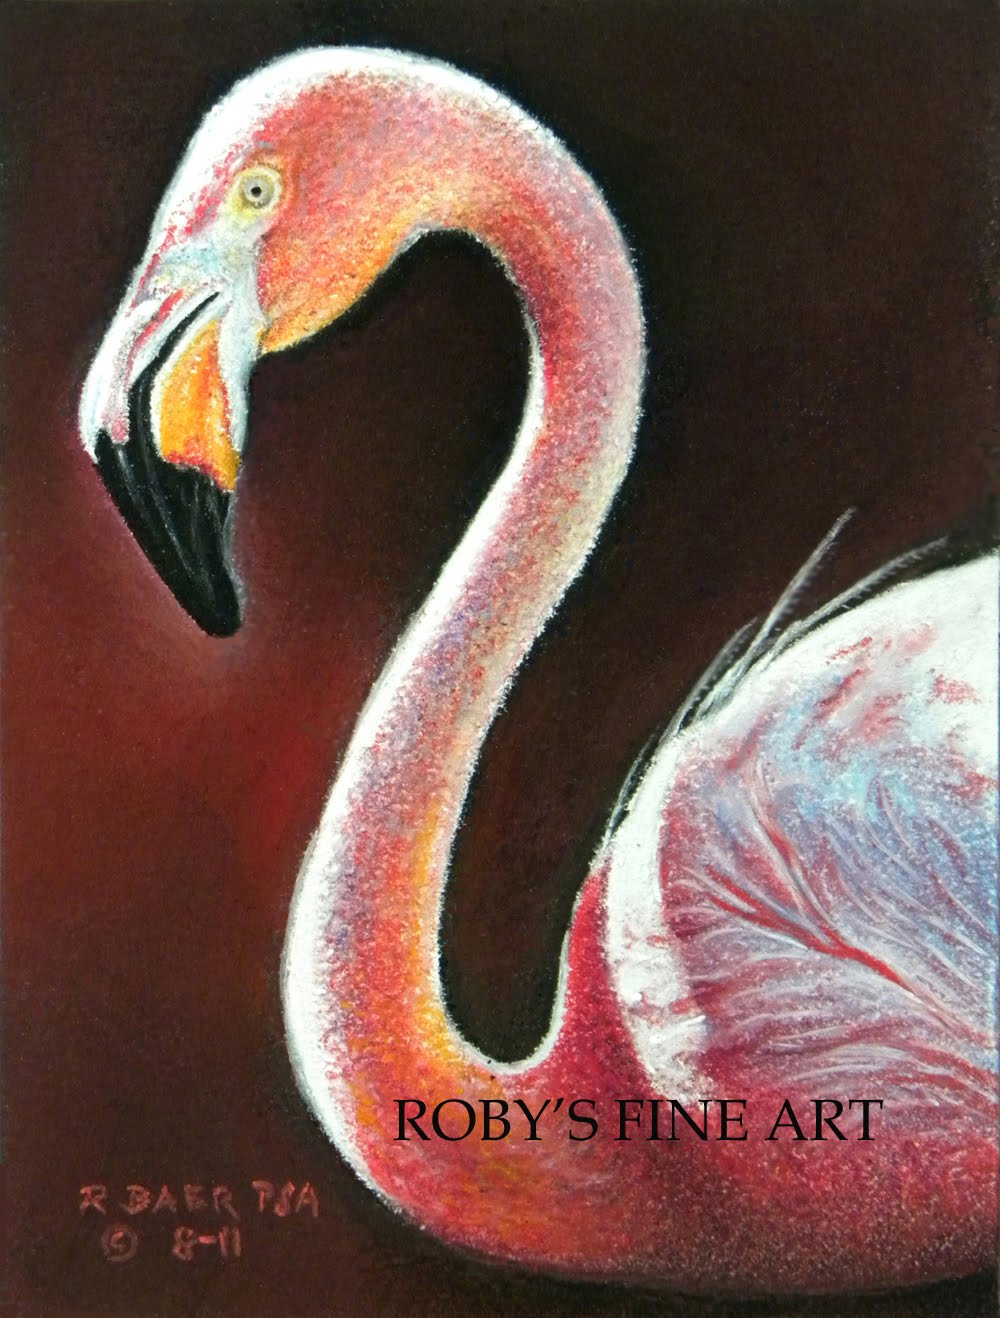 Pastel Paintings By Roberta Quot Roby Quot Baer Psa